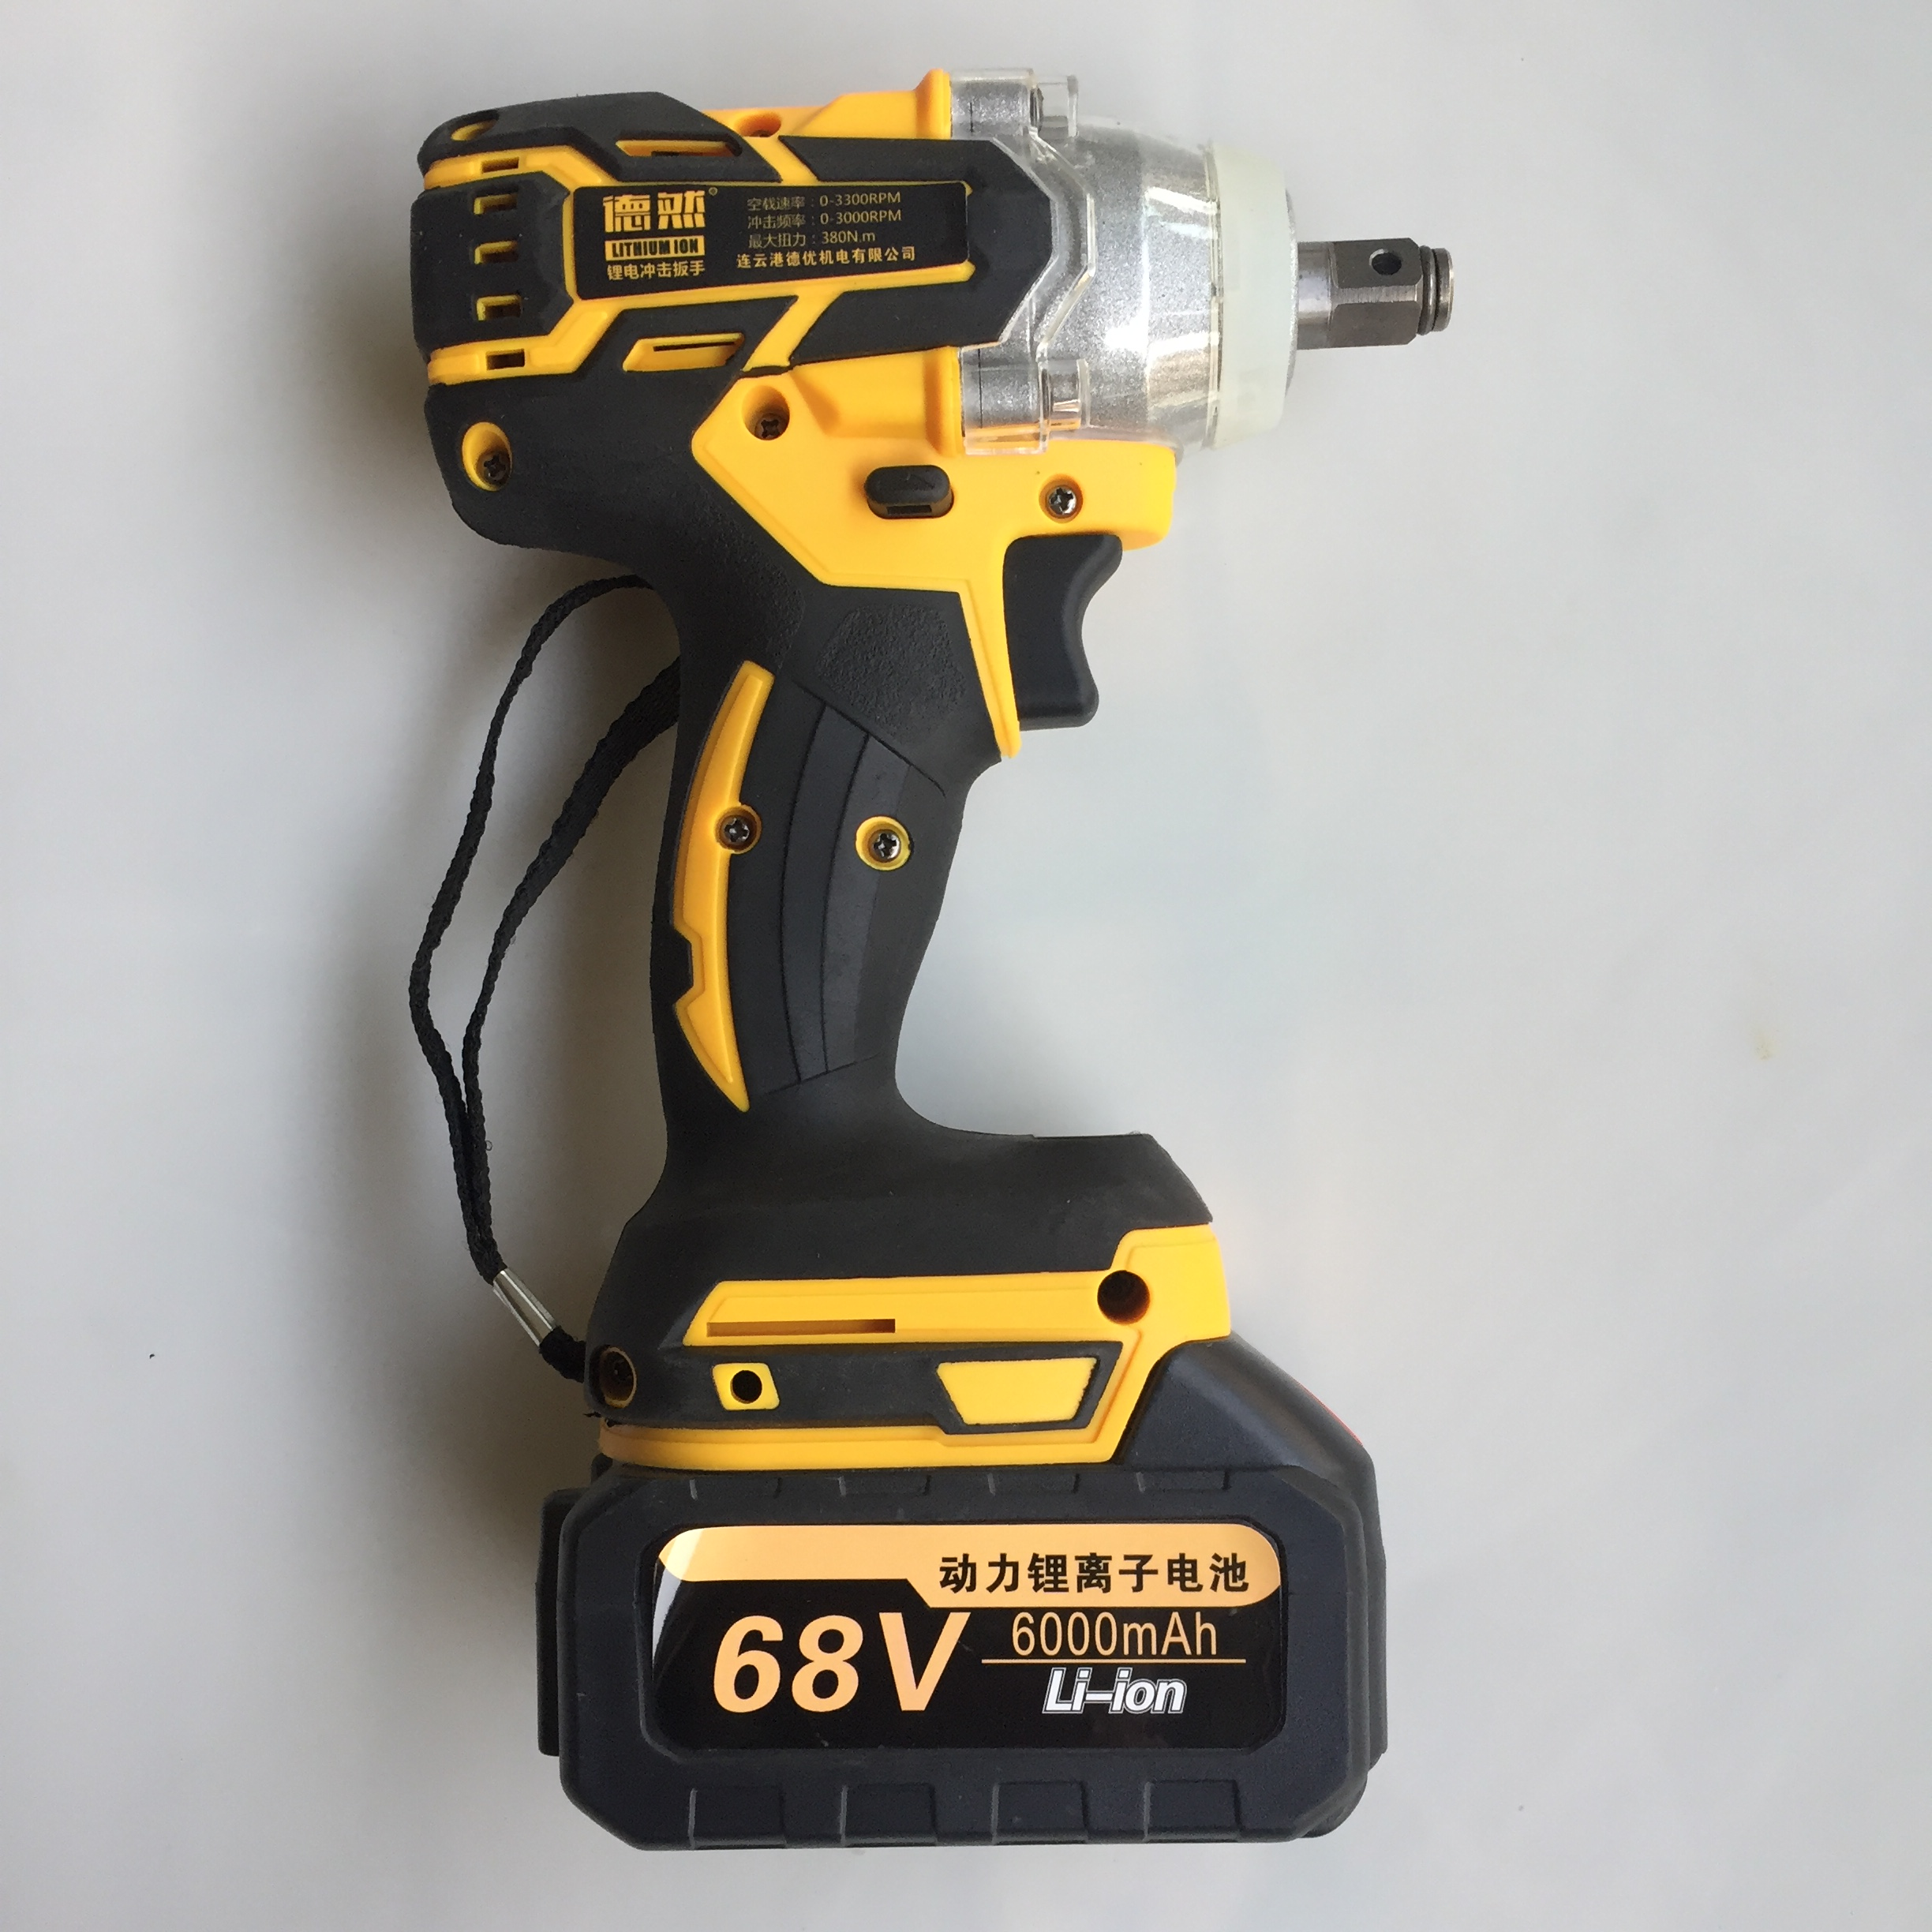 Brushless Cordless Electric Wrench Impact Socket Wrench 380N/M 6000mAh Li Battery Hand Drill Installation Power Tools